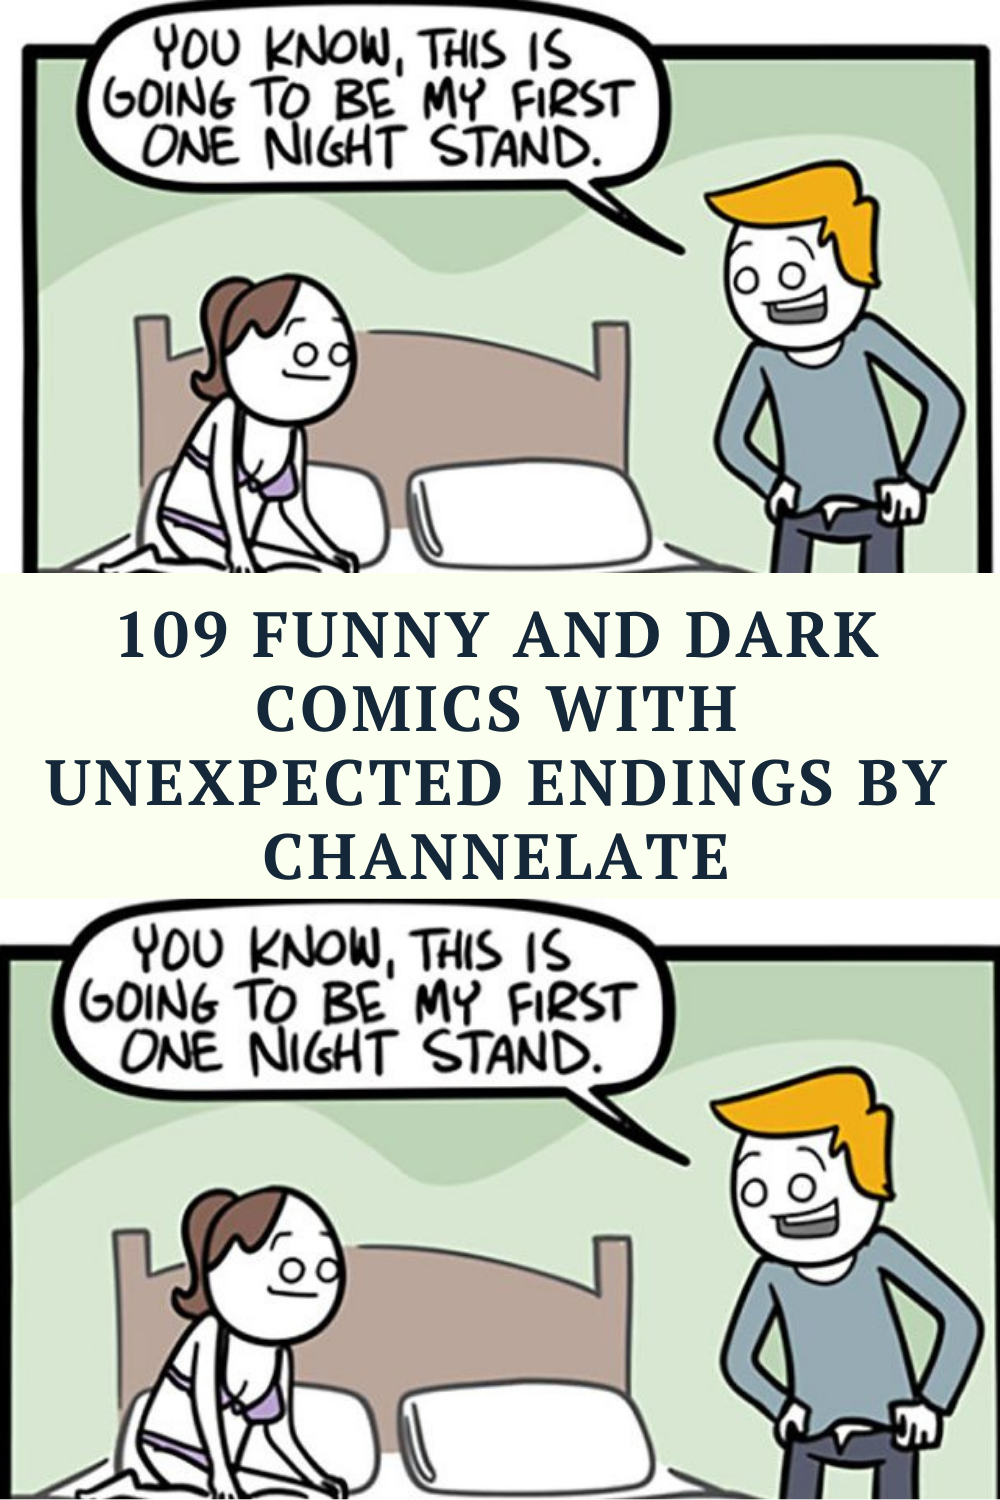 109 Funny And Dark Comics With Unexpected Endings By Channelate Extremely Funny Memes Funny Life Hacks Humor Inappropriate